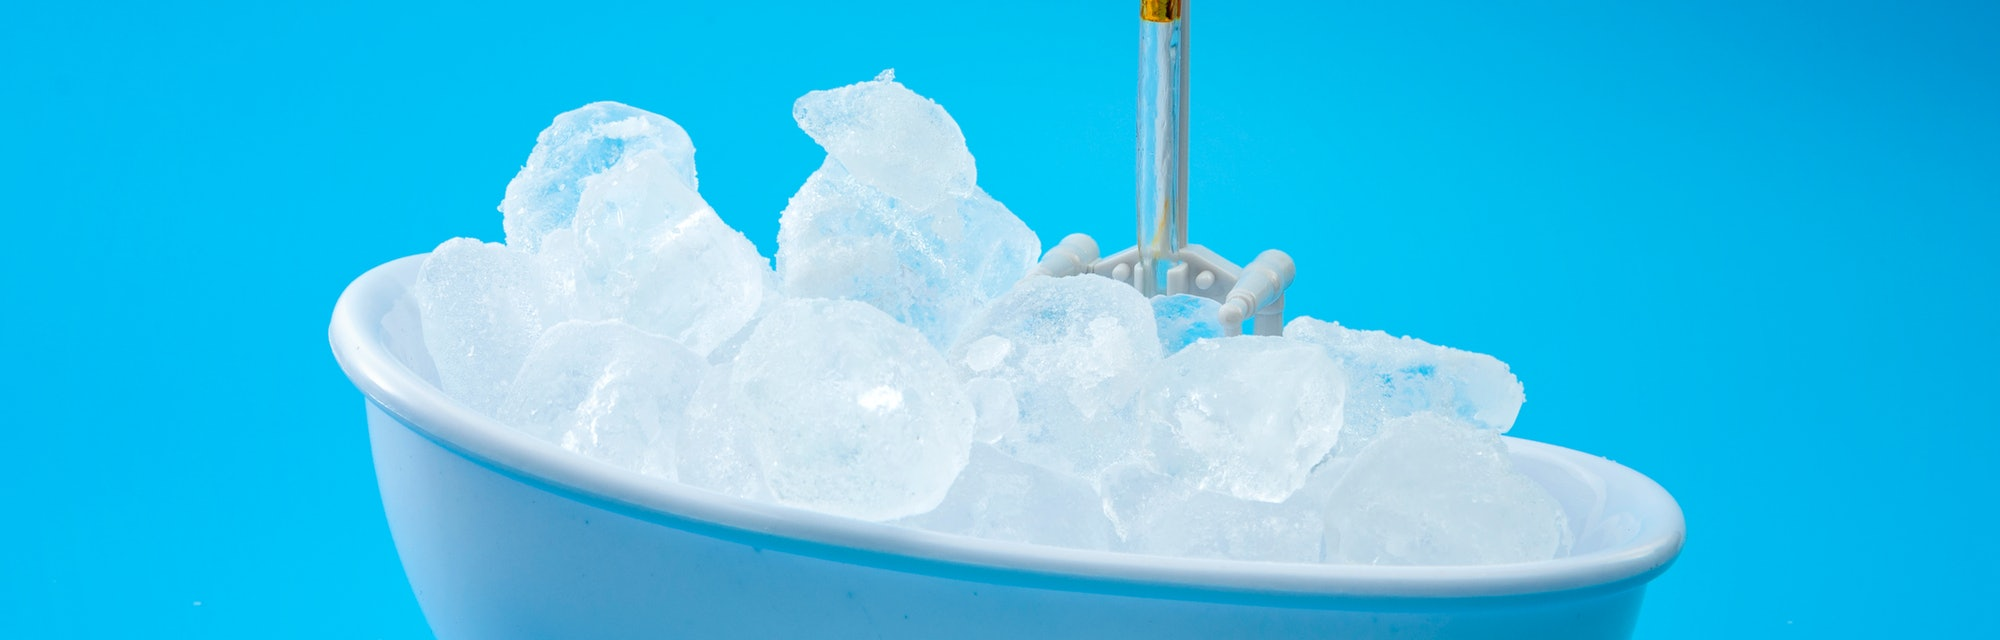 Muscle recovery and healing therapy, performance improvement treatment and extreme cold cryotherapy ...